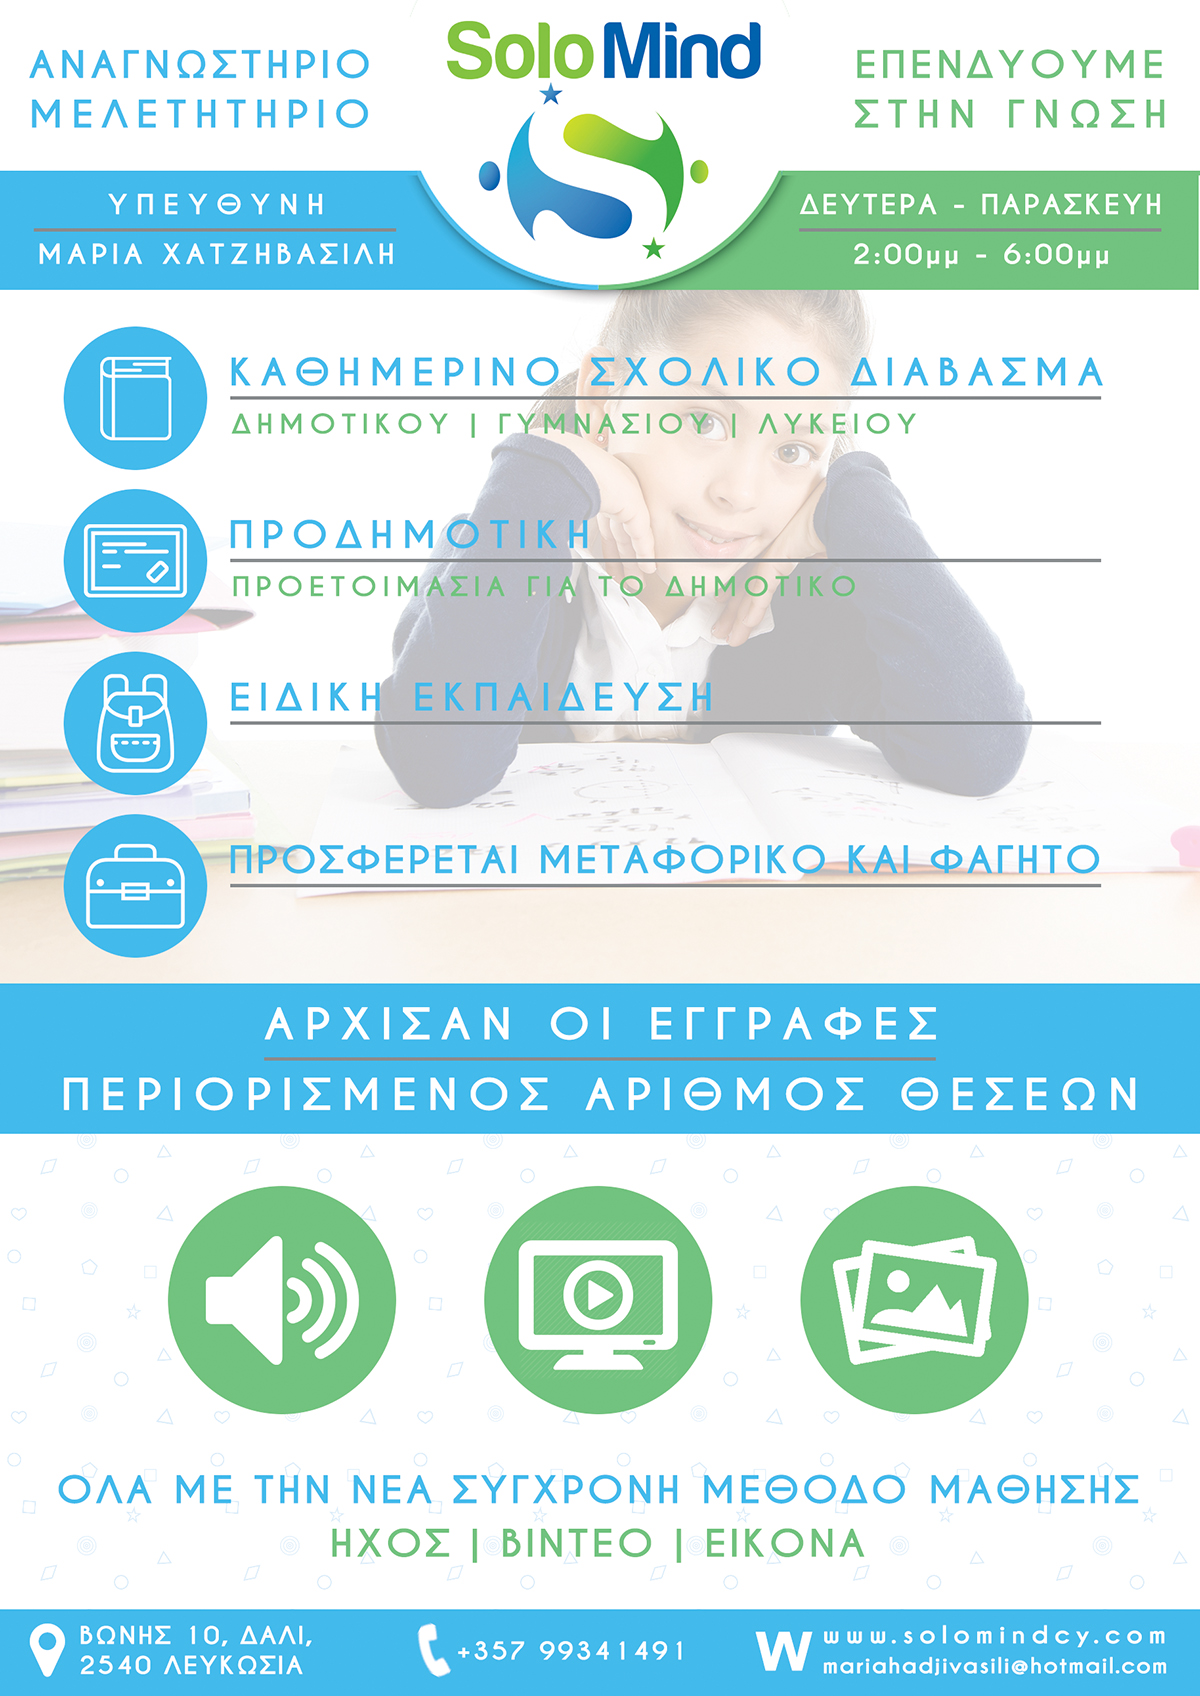 iCreate Web Design | Graphics Design | SoloMind A5 Flyer 01